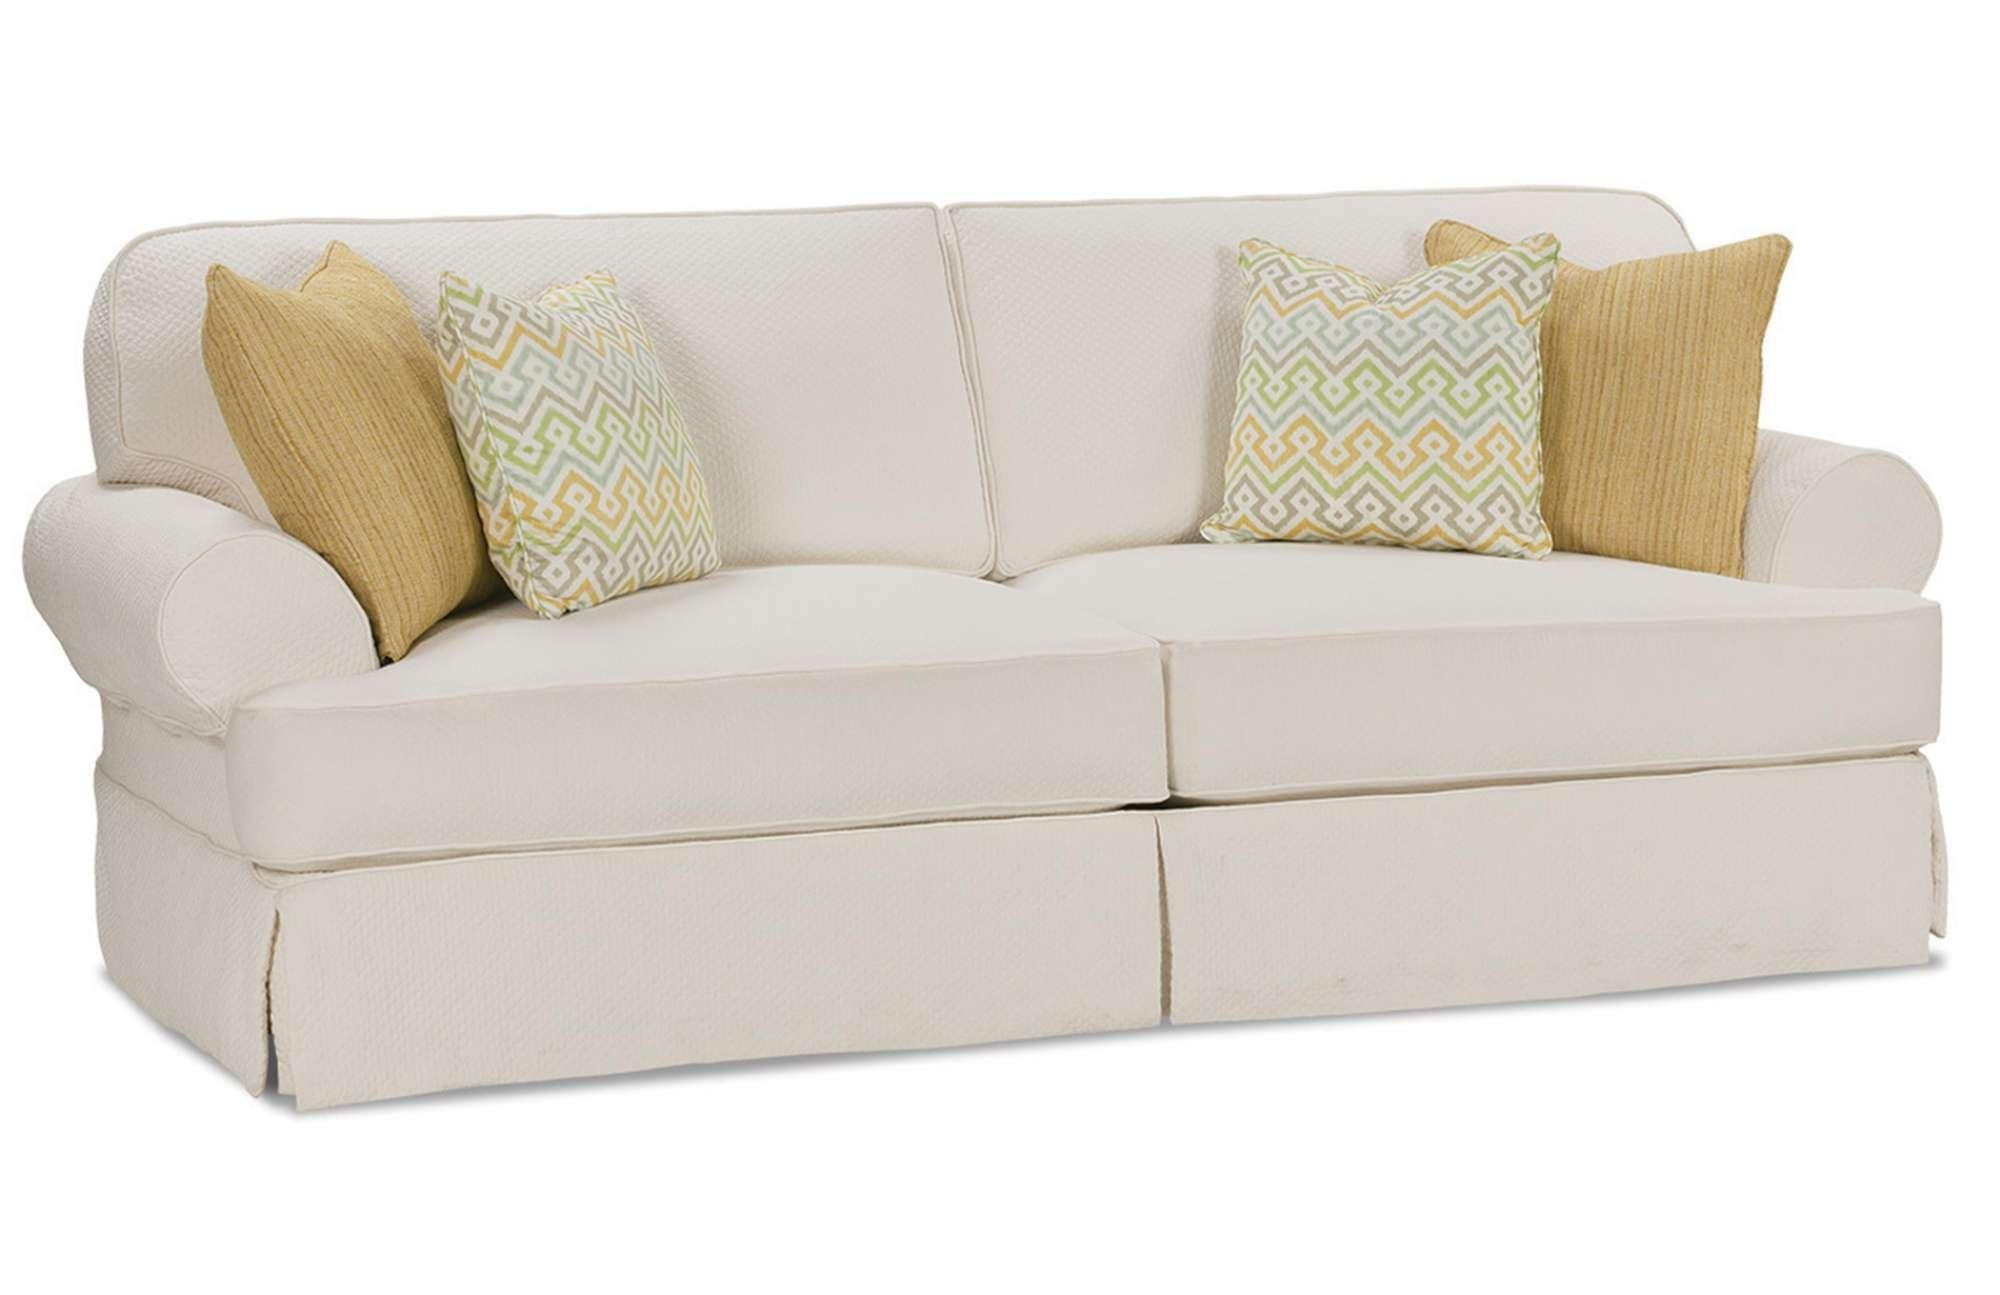 Furniture & Rug: Sofa Covers For Sectionals | Rowe Sofas | Rowe Pertaining To Rowe Sectional Sofas (View 20 of 20)